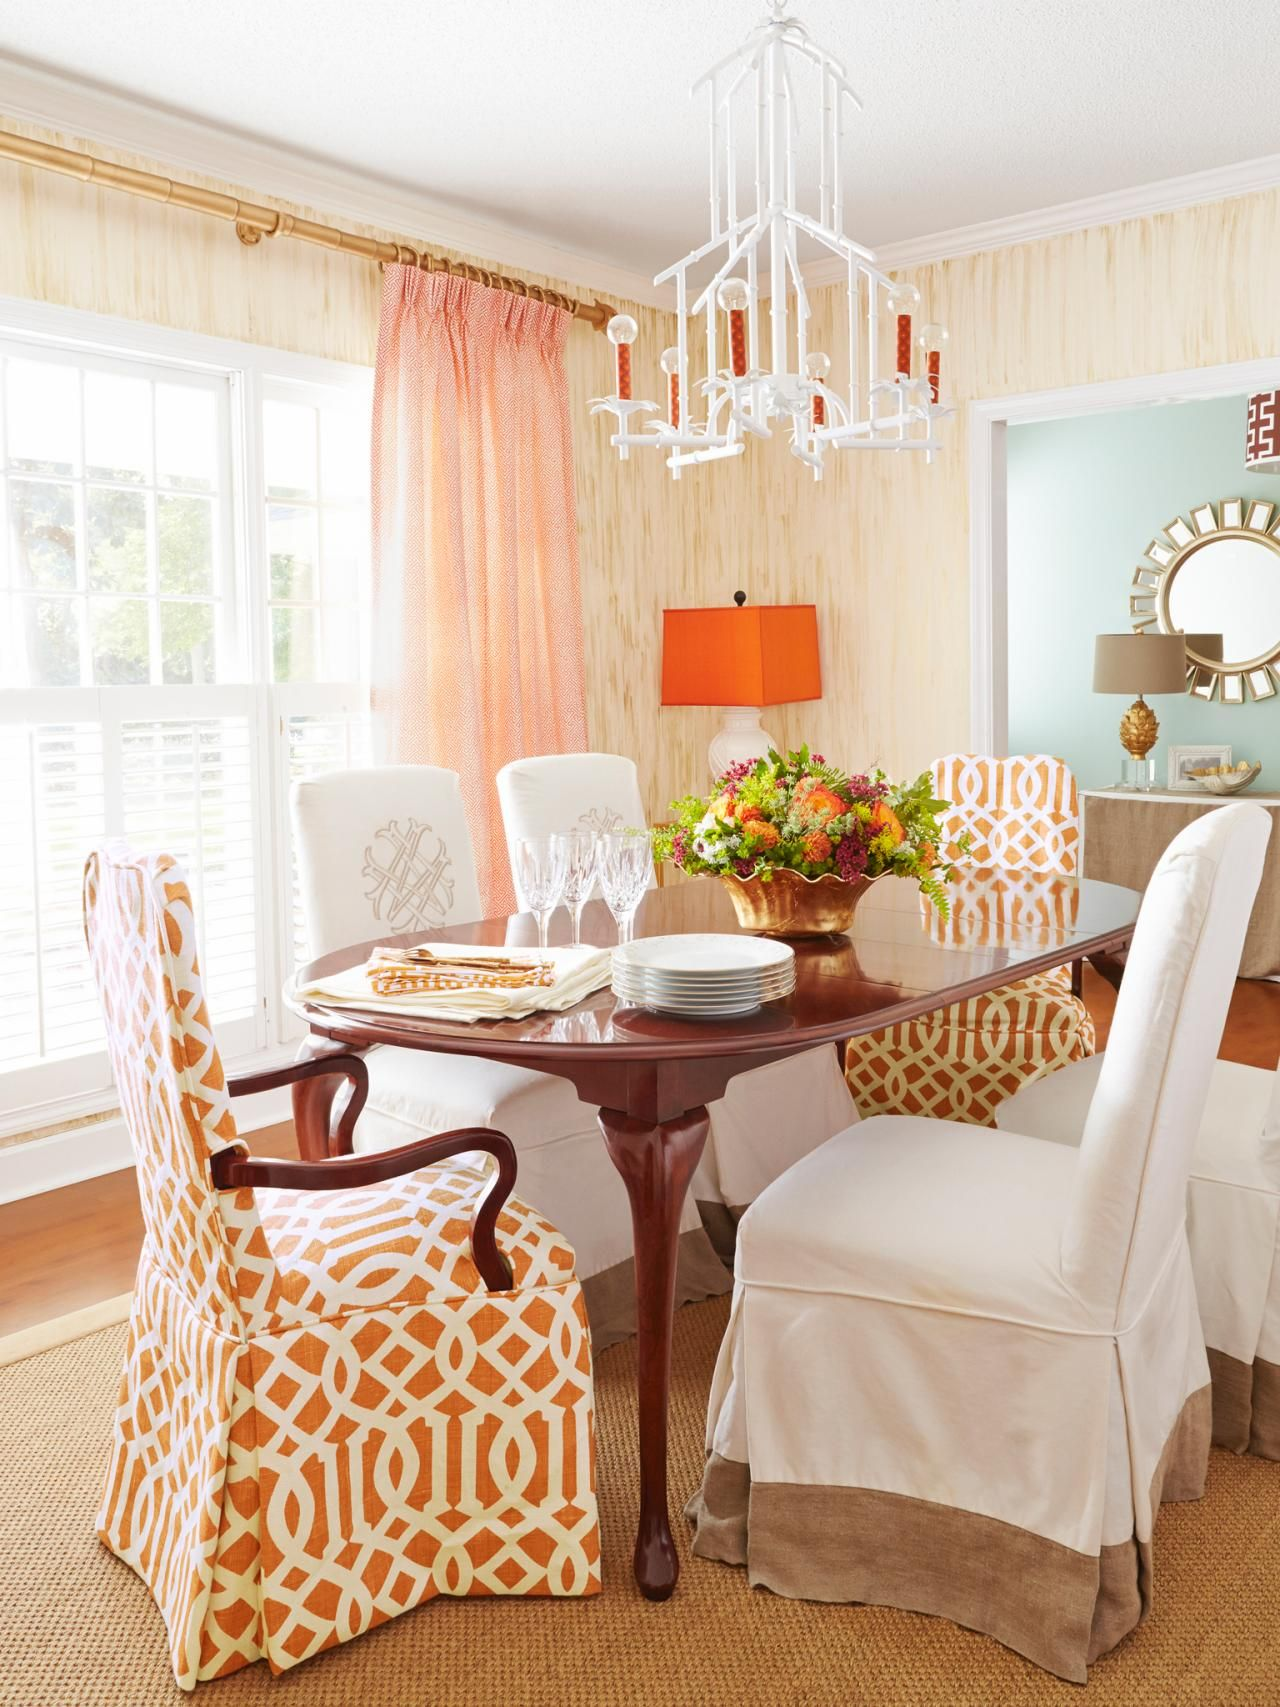 A Clic Spin On Quirky Decorating